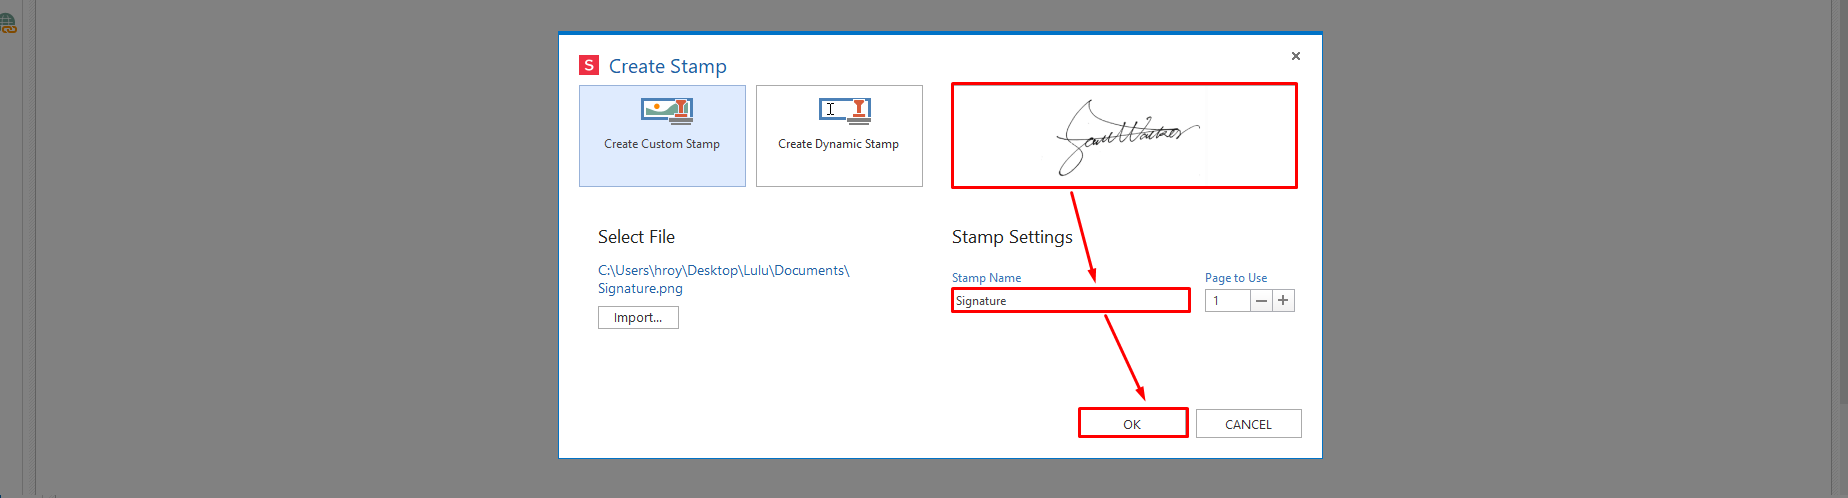 How to Add Stamps to PDF Documents | Soda PDF Blog